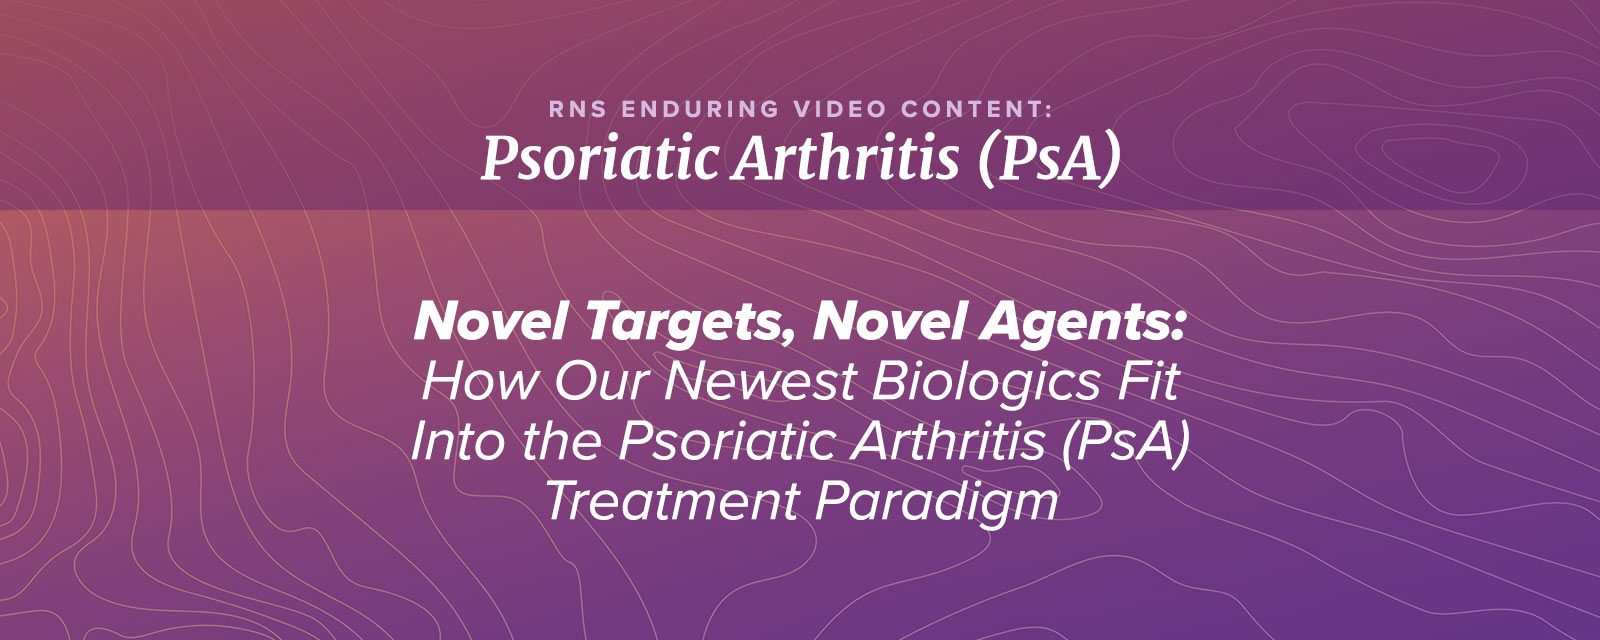 Novel Targets, Novel Agents: How Our Newest Biologics Fit Into the PsA Treatment Paradigm